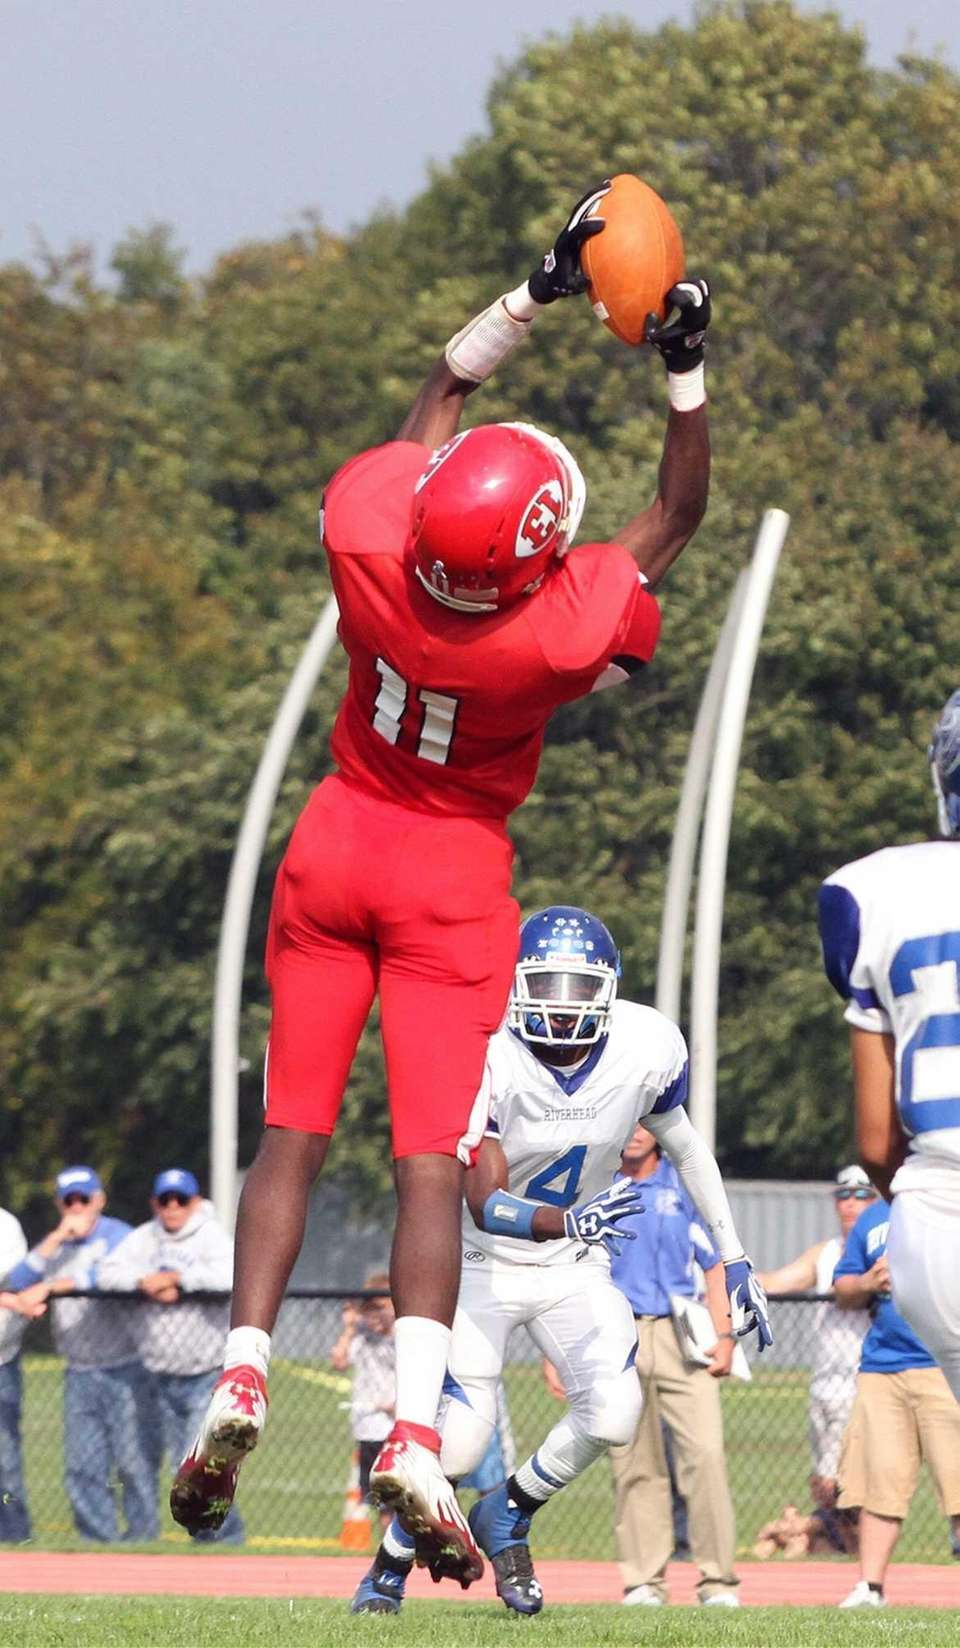 East Islip's Hugens Tranquille gets elevated for the